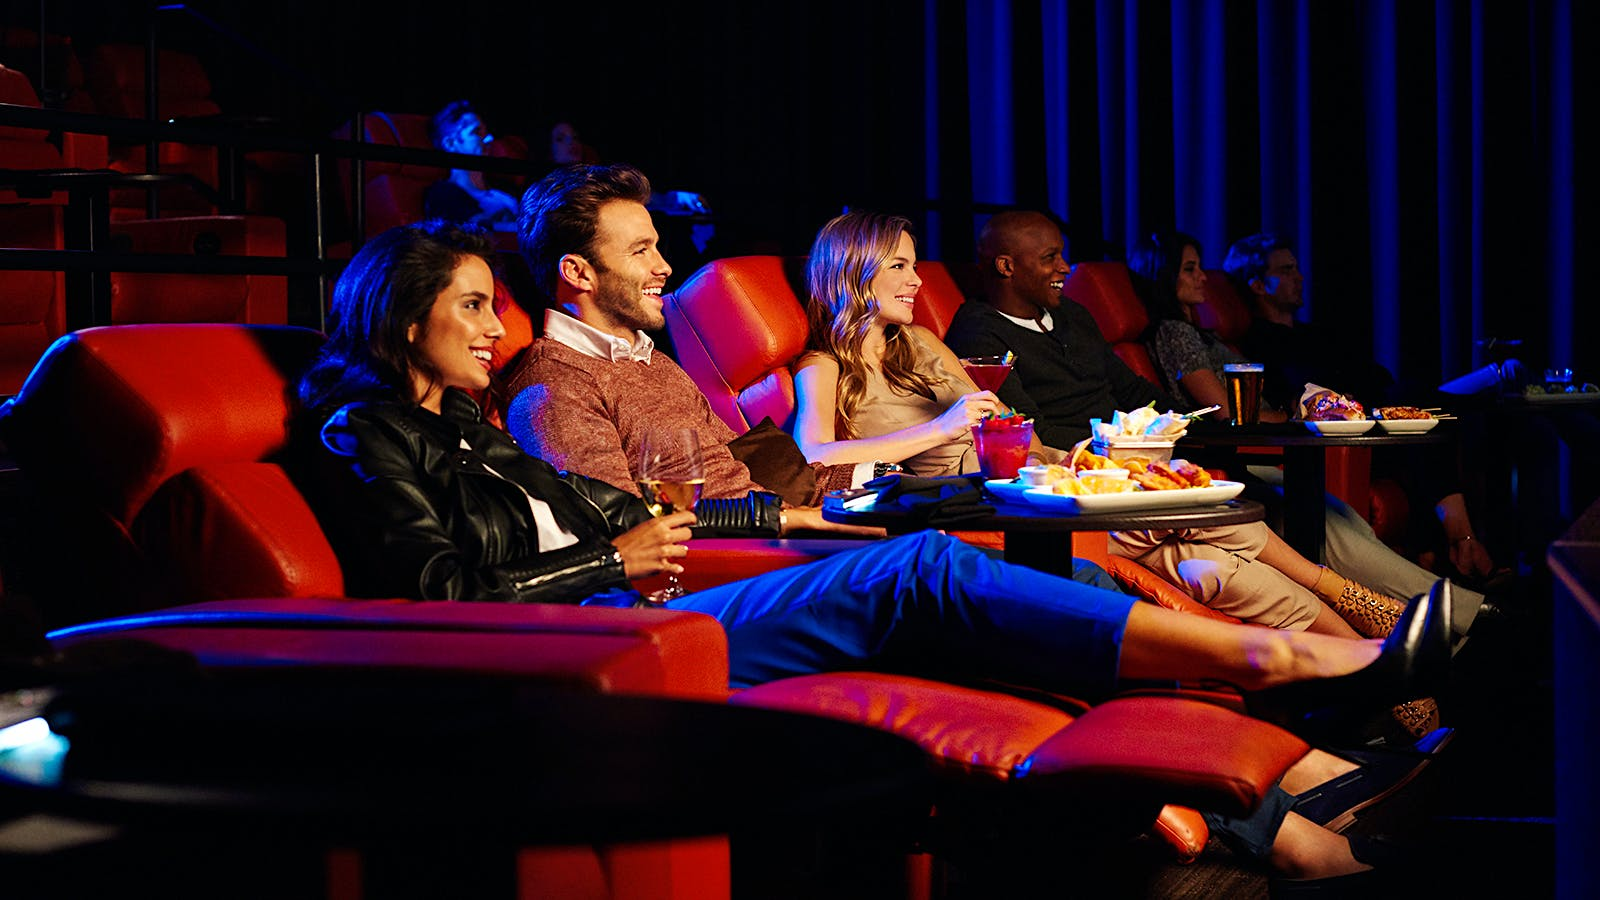 Surround Sound? IMAX? Chardonnay? Movie Theaters Look to Alcoholic Beverages